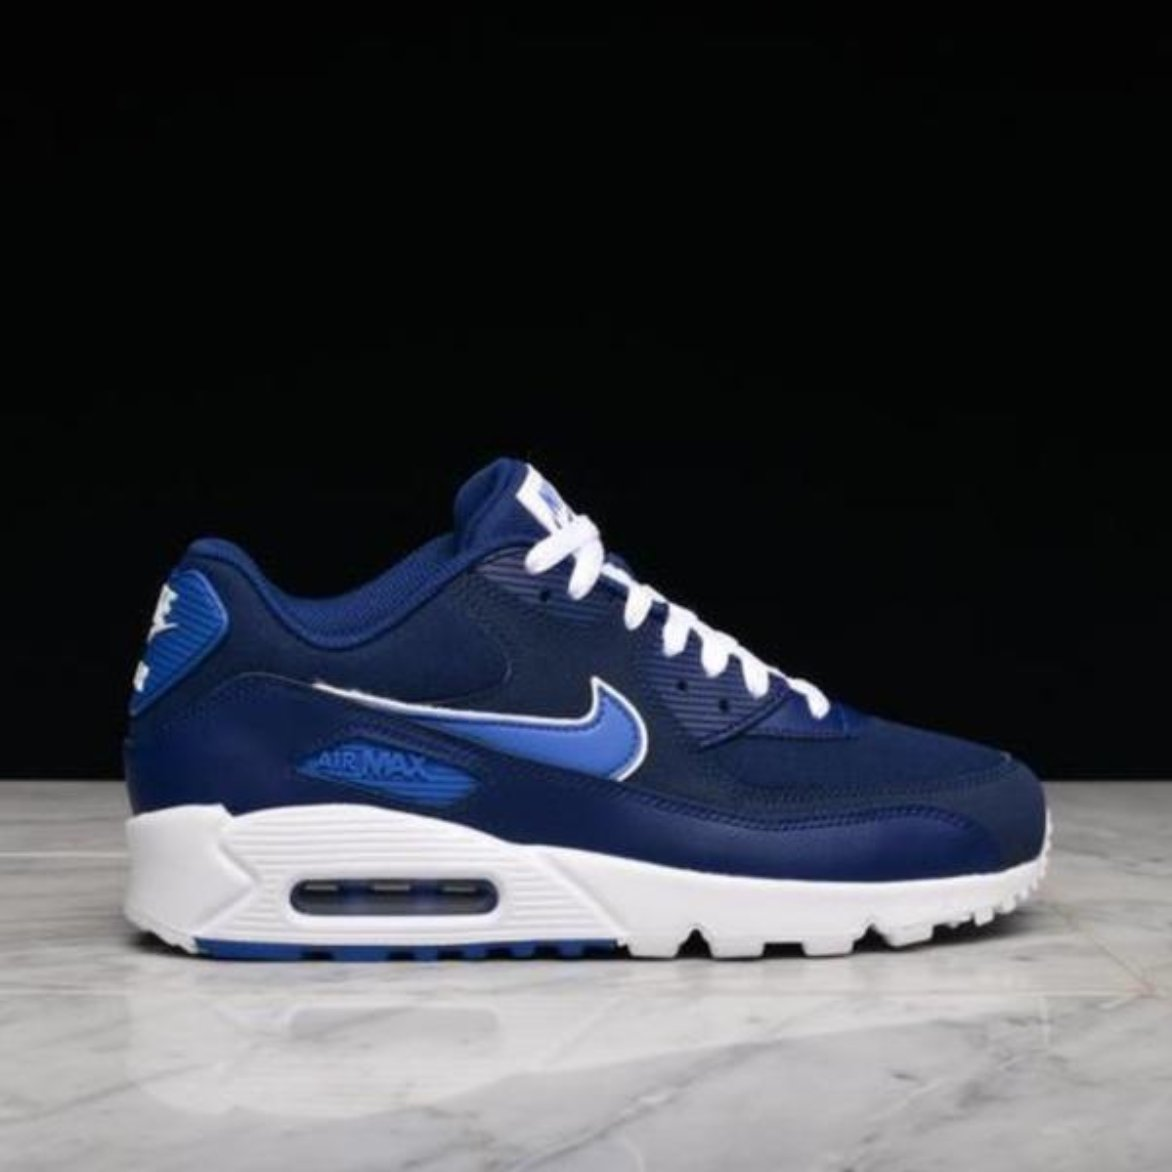 0b0cdb9753f NIKE AIR MAX 90 ESSENTIAL- BLUE VOID